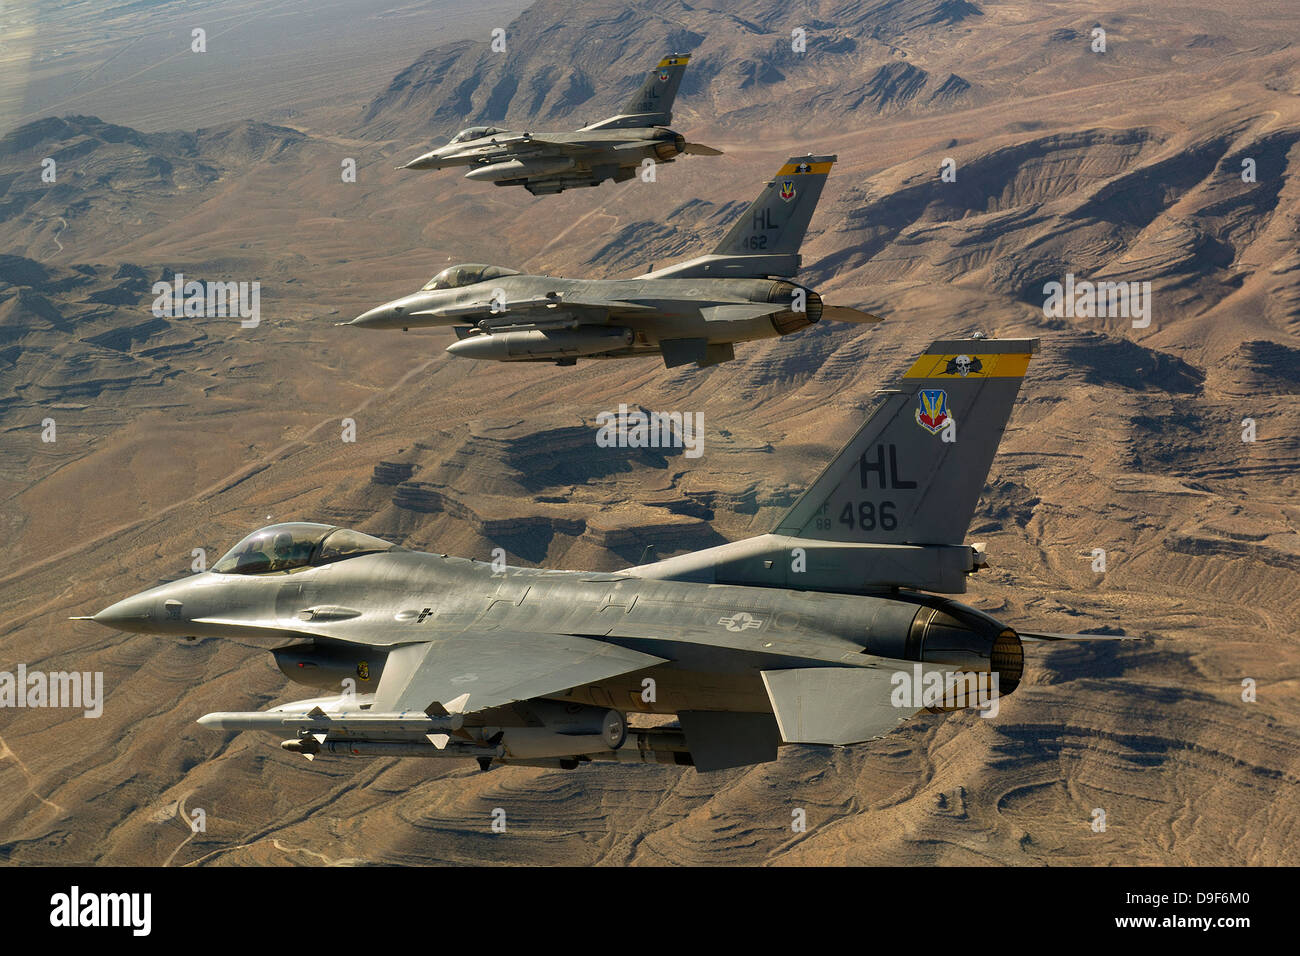 Fighter jets return from the Nevada Test and Training Range. - Stock Image